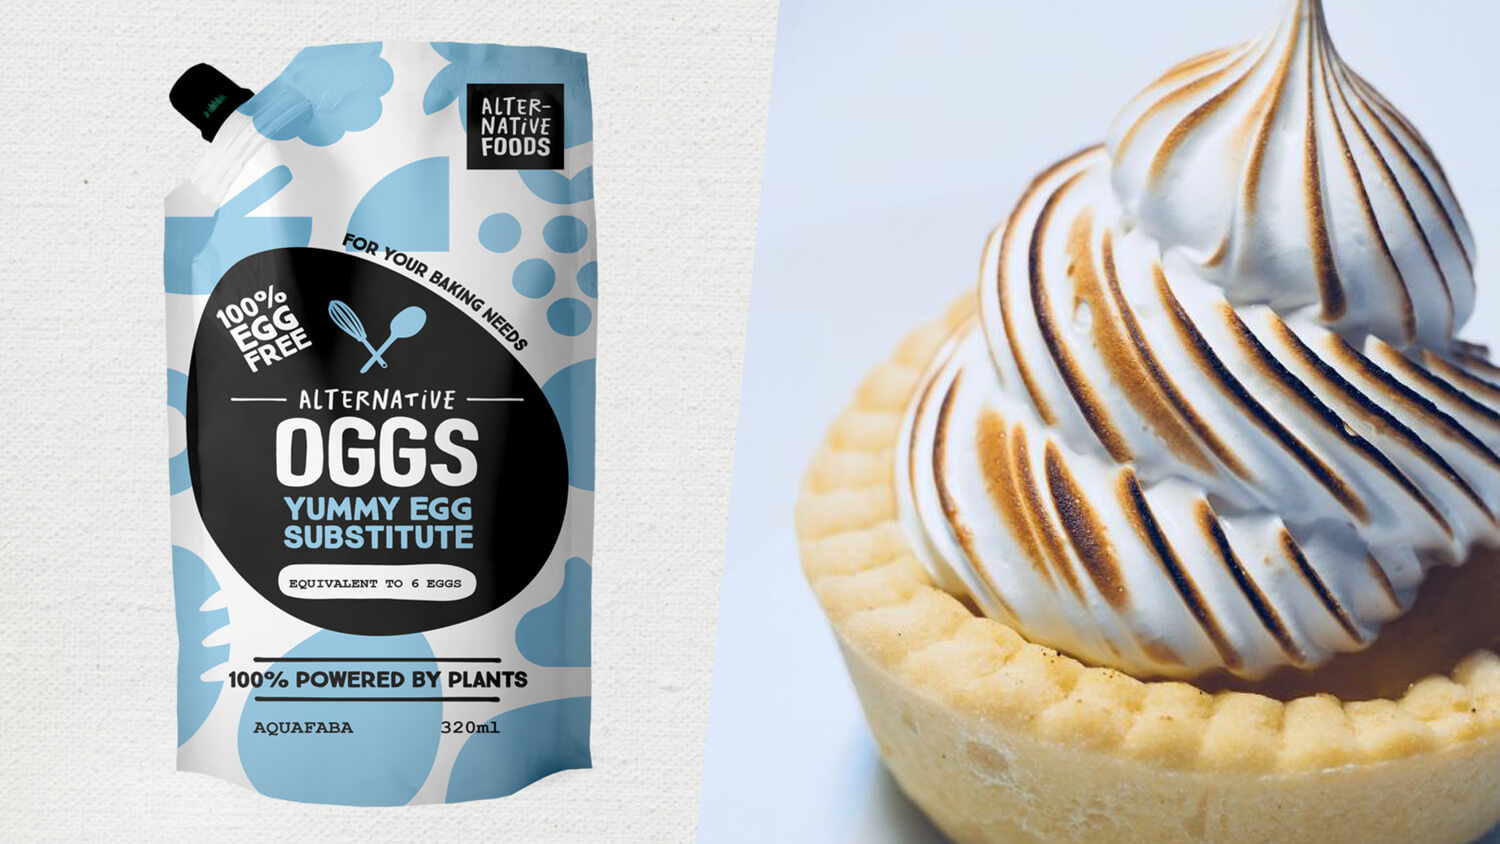 Vegan Eggs Made With Aquafaba on the Way to the UK